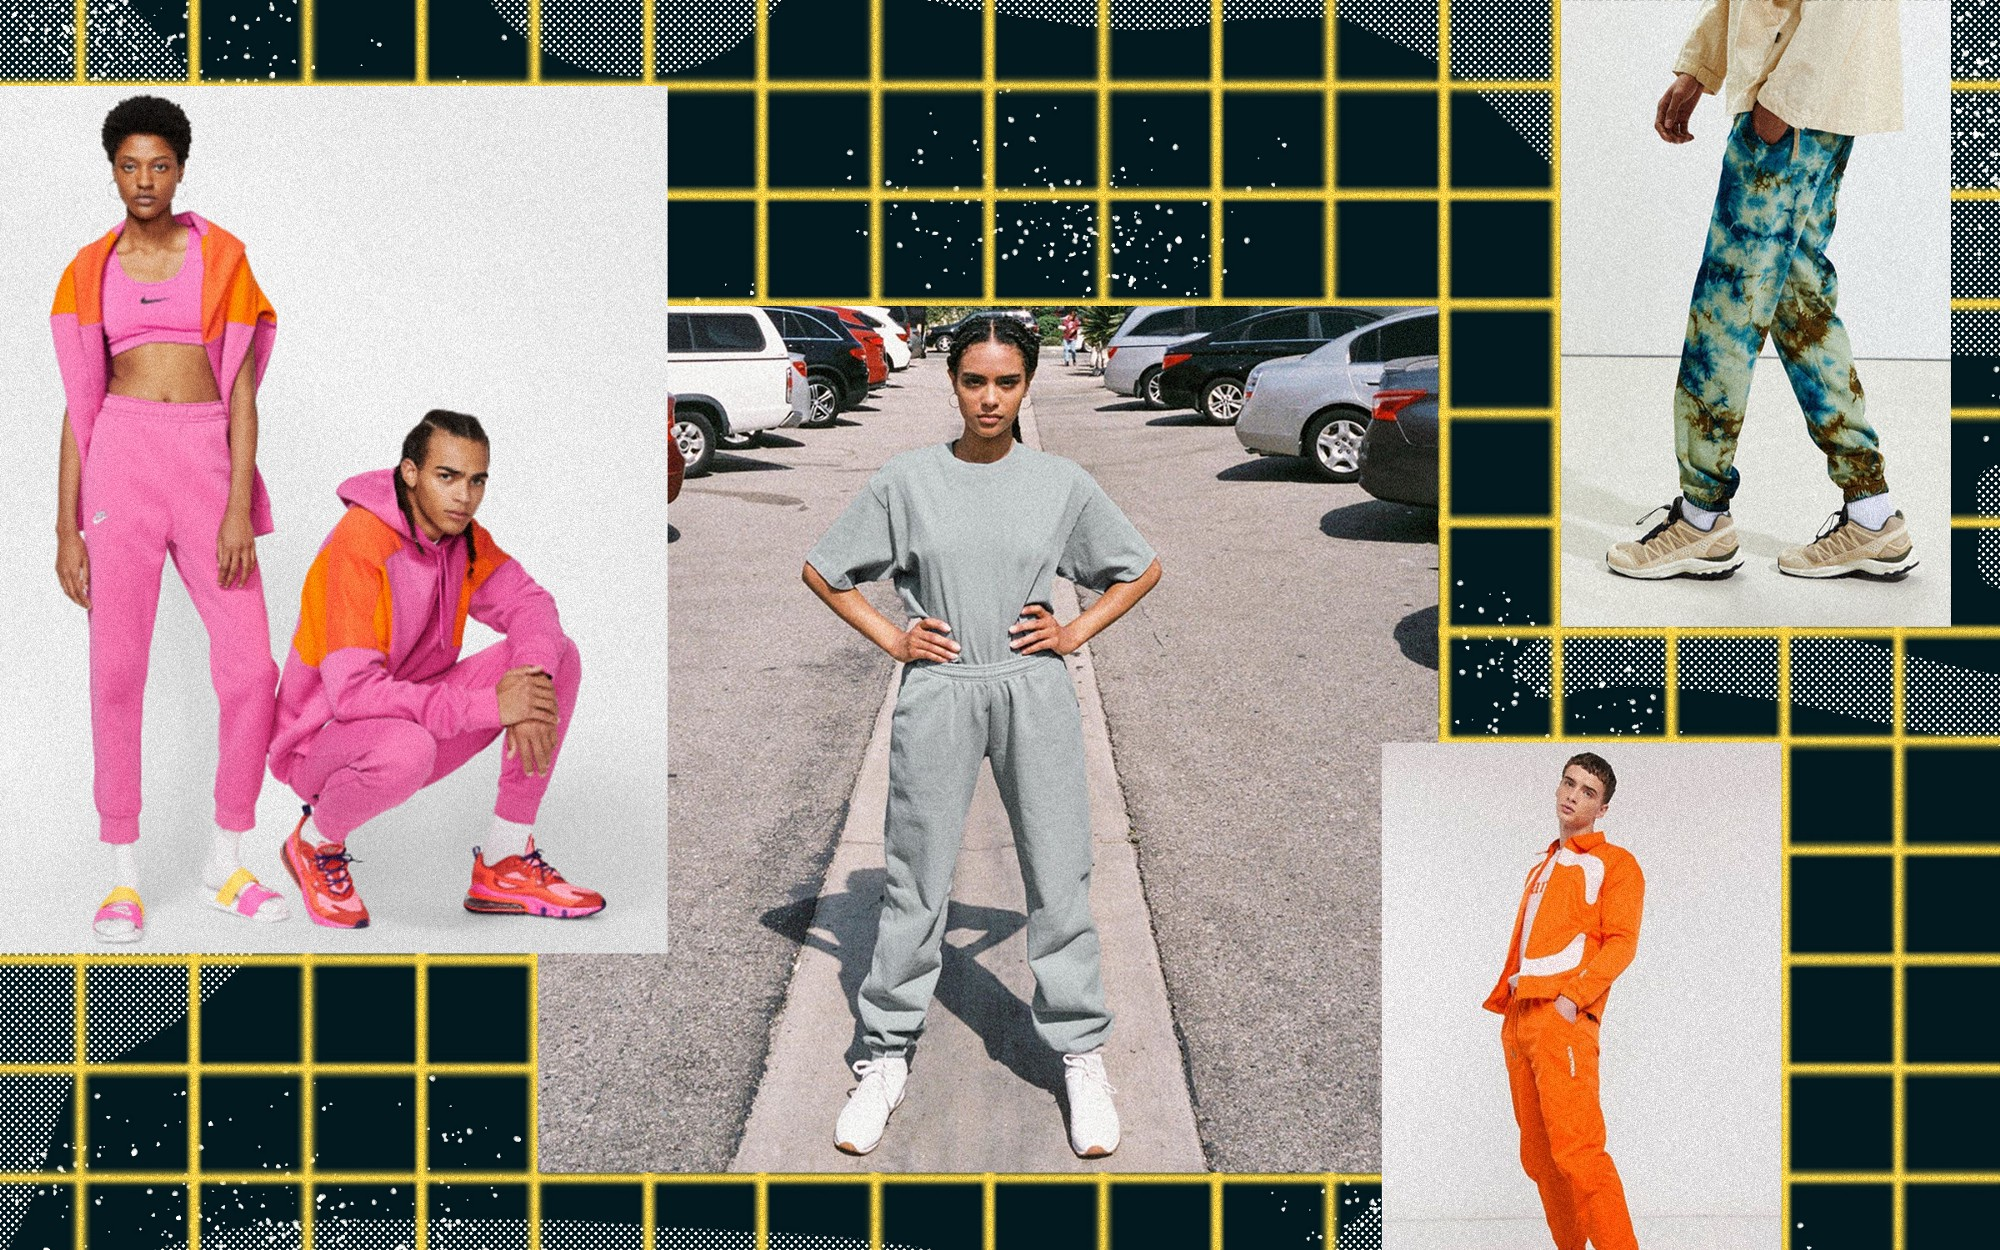 A collage of different sweatpants outfits from brands such as Nike, Asos, Urban Outfitters.